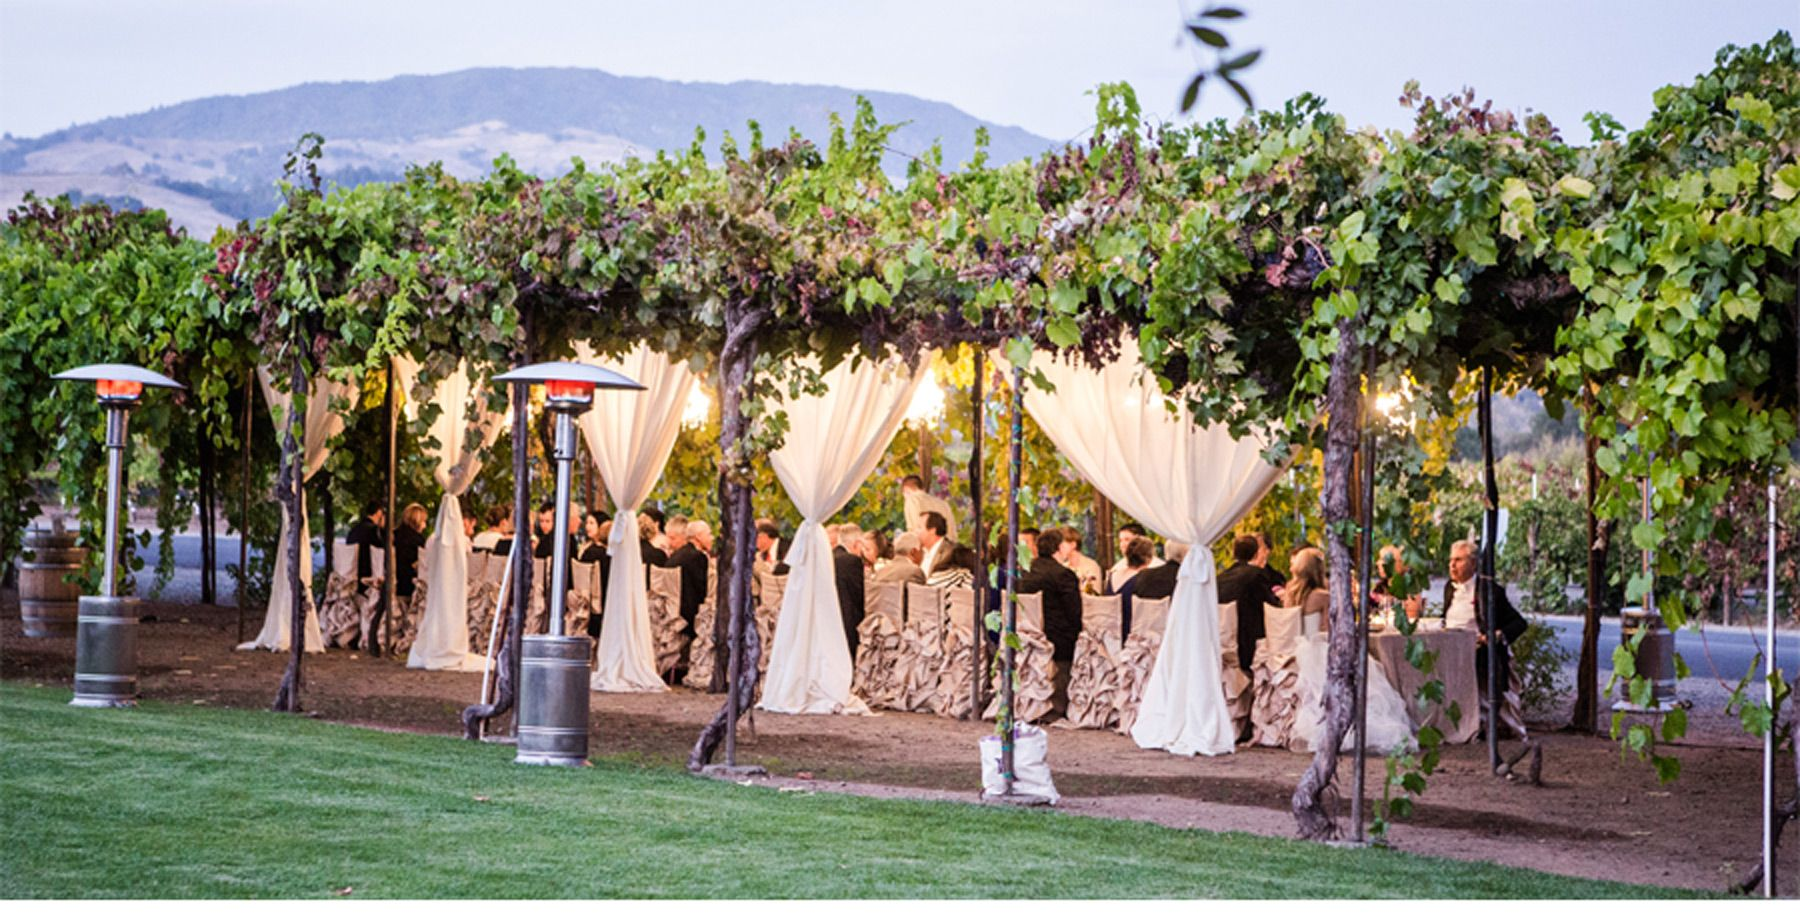 Our Muse Vineyard Wedding In Northern California Be Inspired By Lyn Andrew S